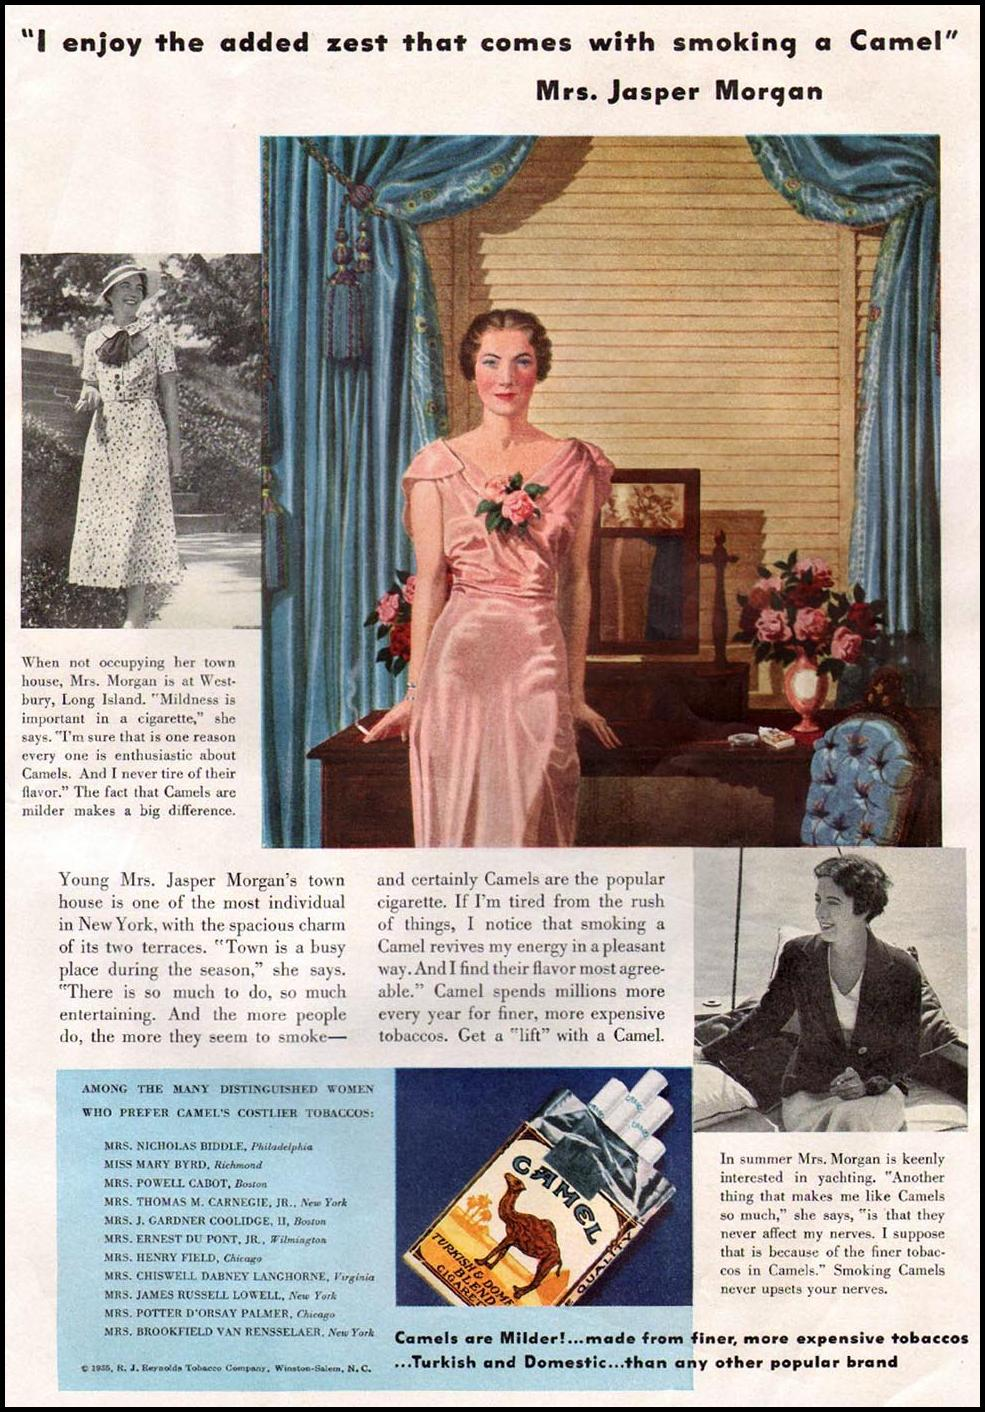 CAMEL CIGARETTES GOOD HOUSEKEEPING 12/01/1935 p. 141